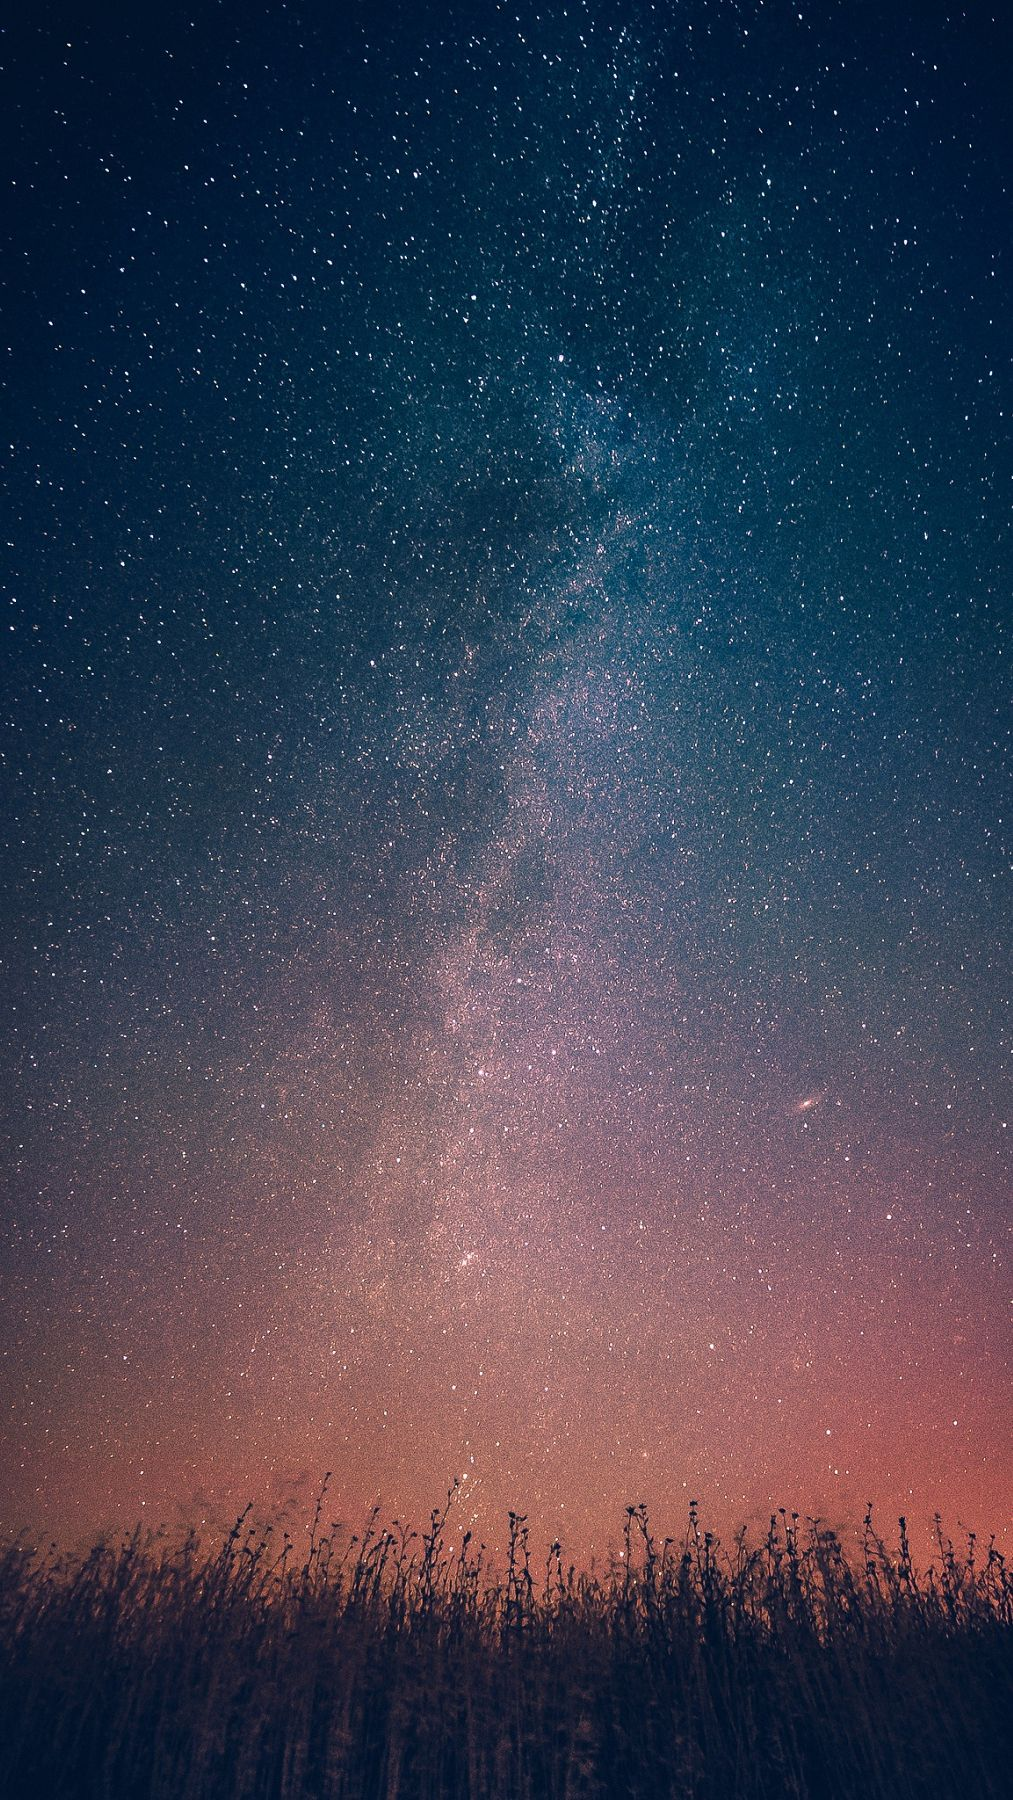 Milky Way Galaxy From Earth Infinite Stars iPhone Wallpaper